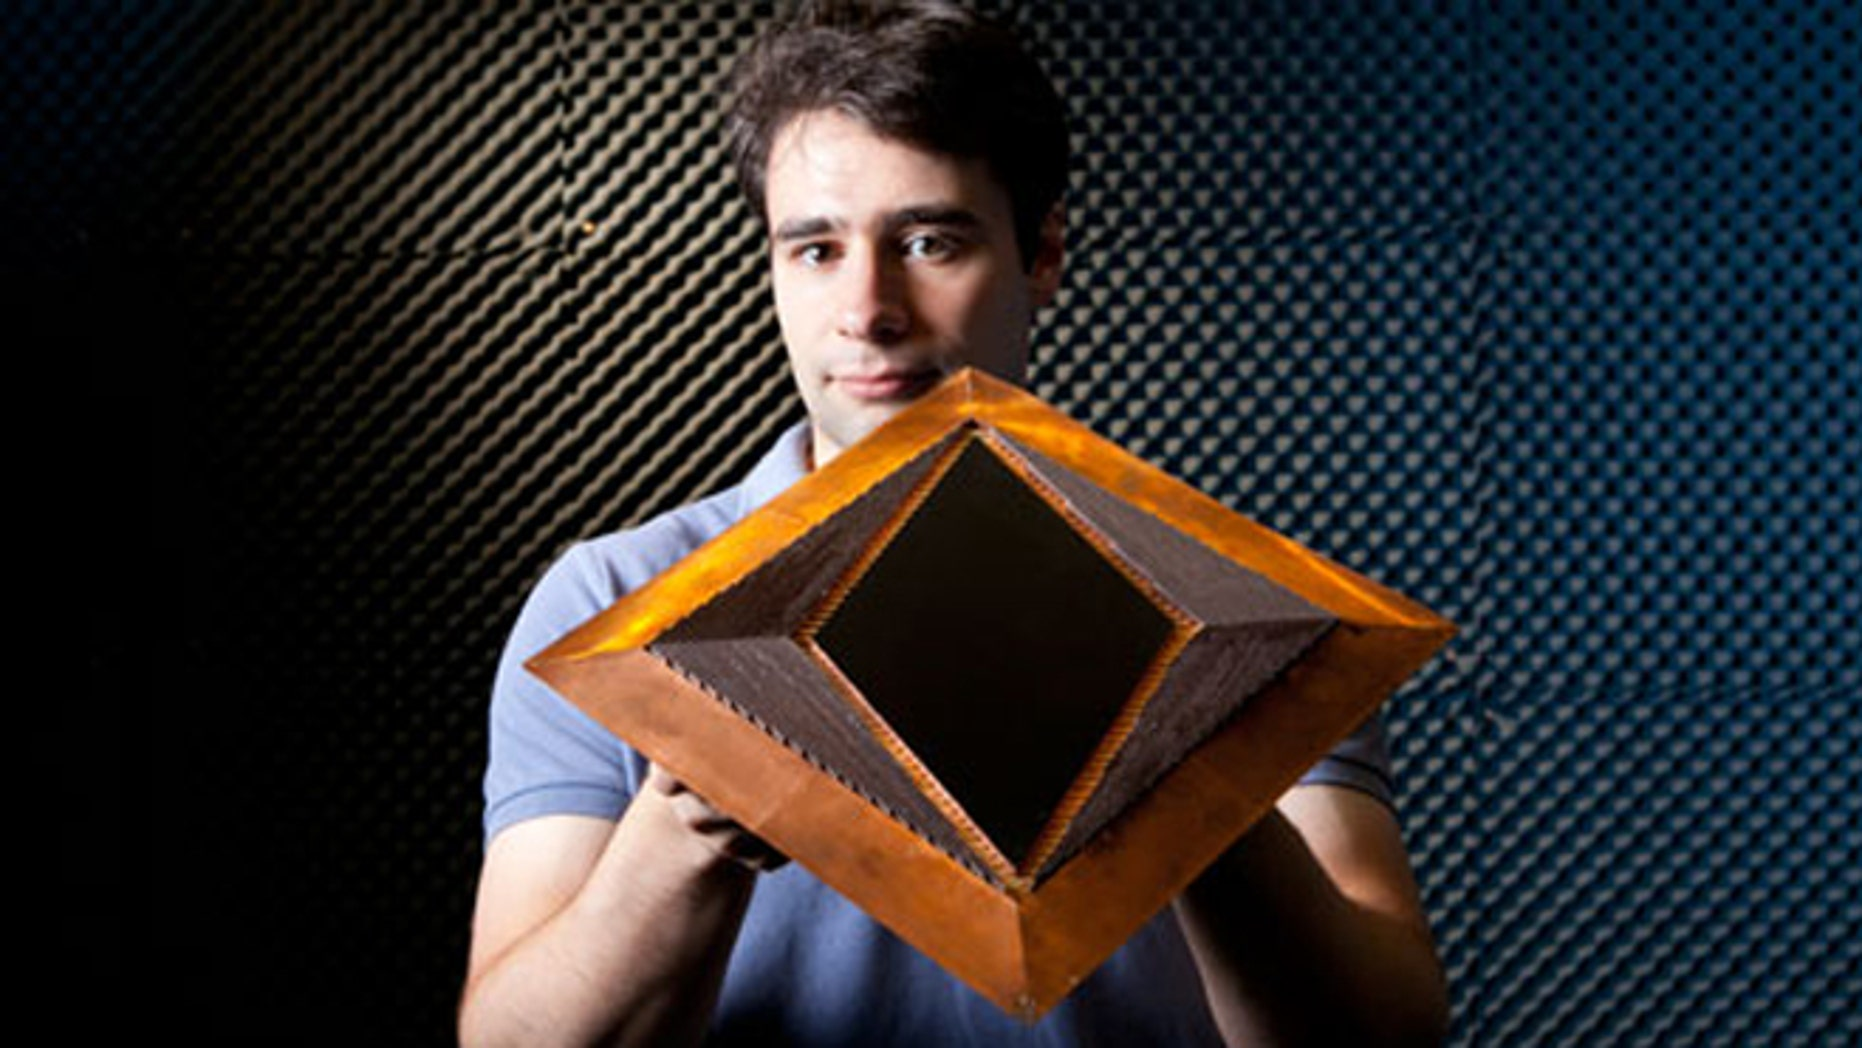 Nov. 12, 2012: A member of the lab at Duke University's Pratt School of Engineering has made a giant leap toward creating an invisibility cloak.